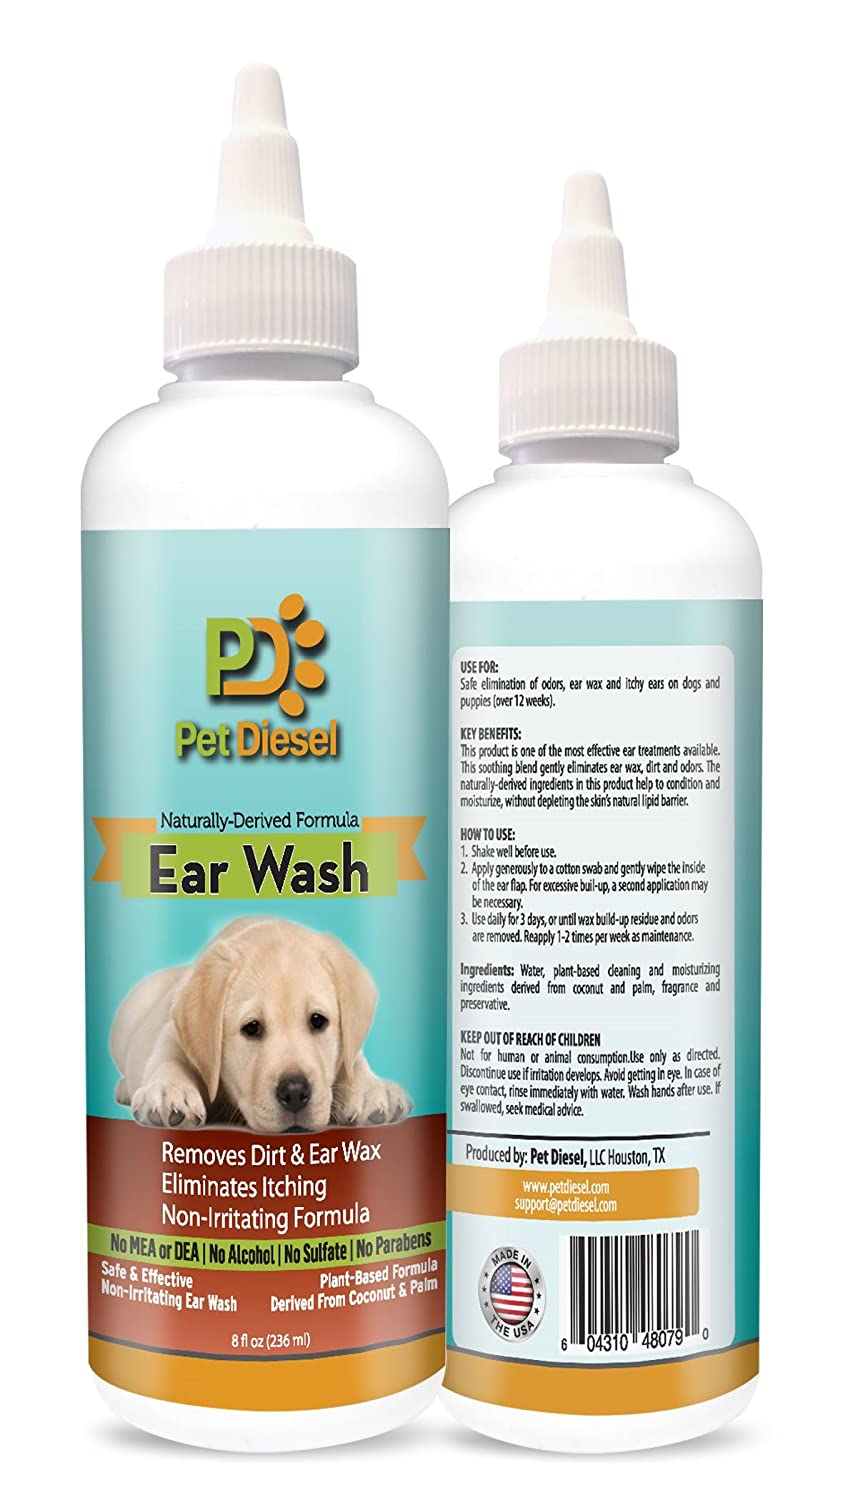 Dog Ear Wash Cleanser Ideal For Ear Wax Removal, Itchy Ears, Yeast & Odor Elimination - Effective & Non Irritating Naturally Derived Formula With Coconut, Palm Oil & Citrus Extracts - 8 FL Oz